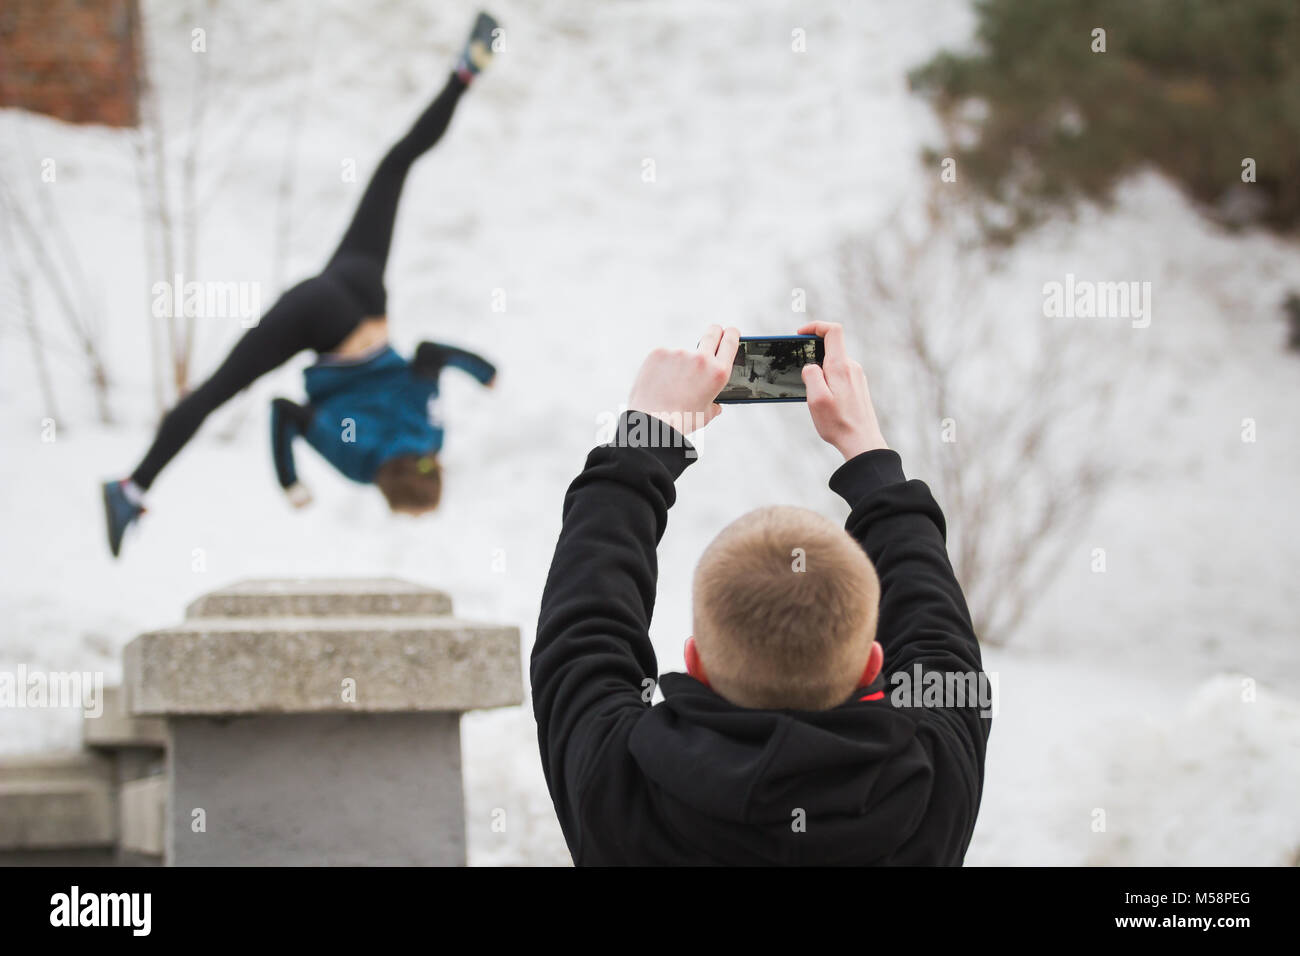 Teenager makes photo on smartphone of acrobatic jump girl in winter city park - parkour concept Stock Photo